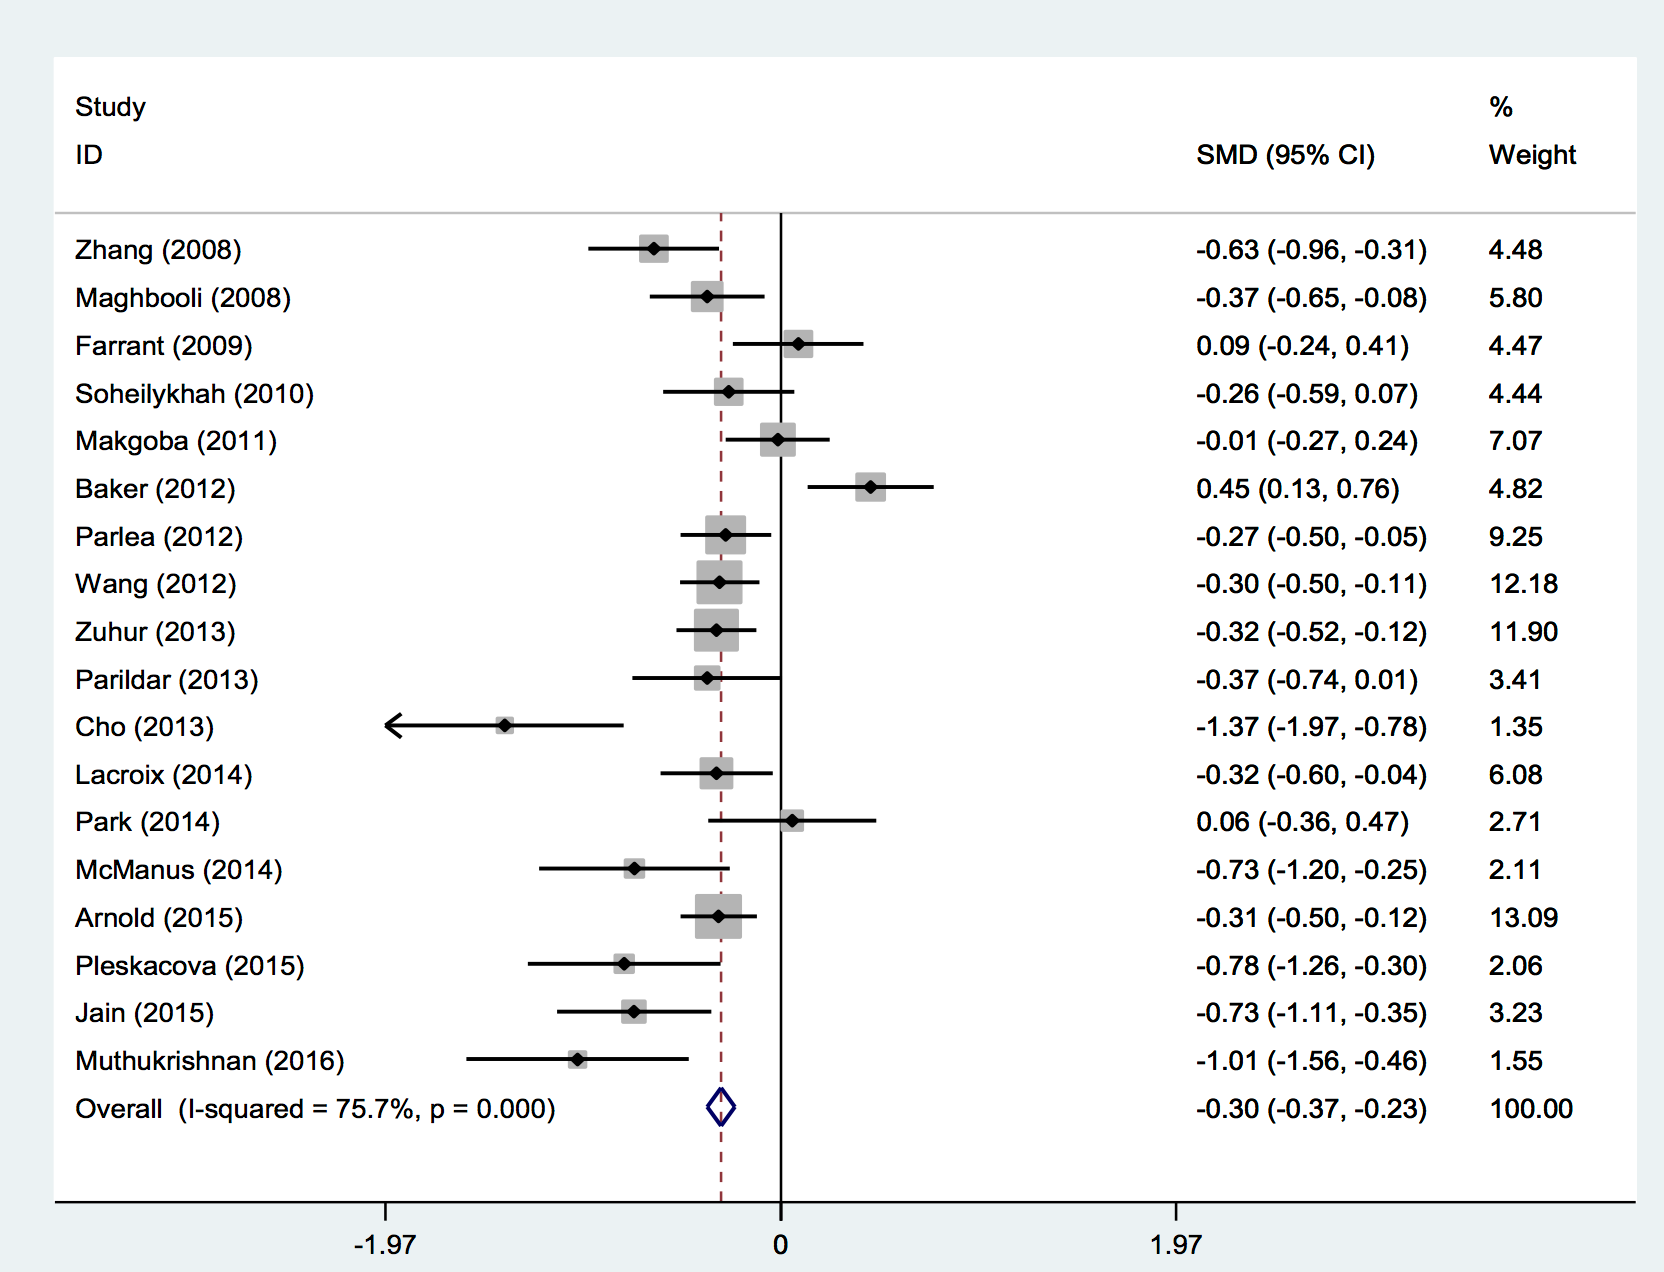 Figure 3 Meta-analysis of the association between serum 25(OH)D level and gestational diabetes mellitus